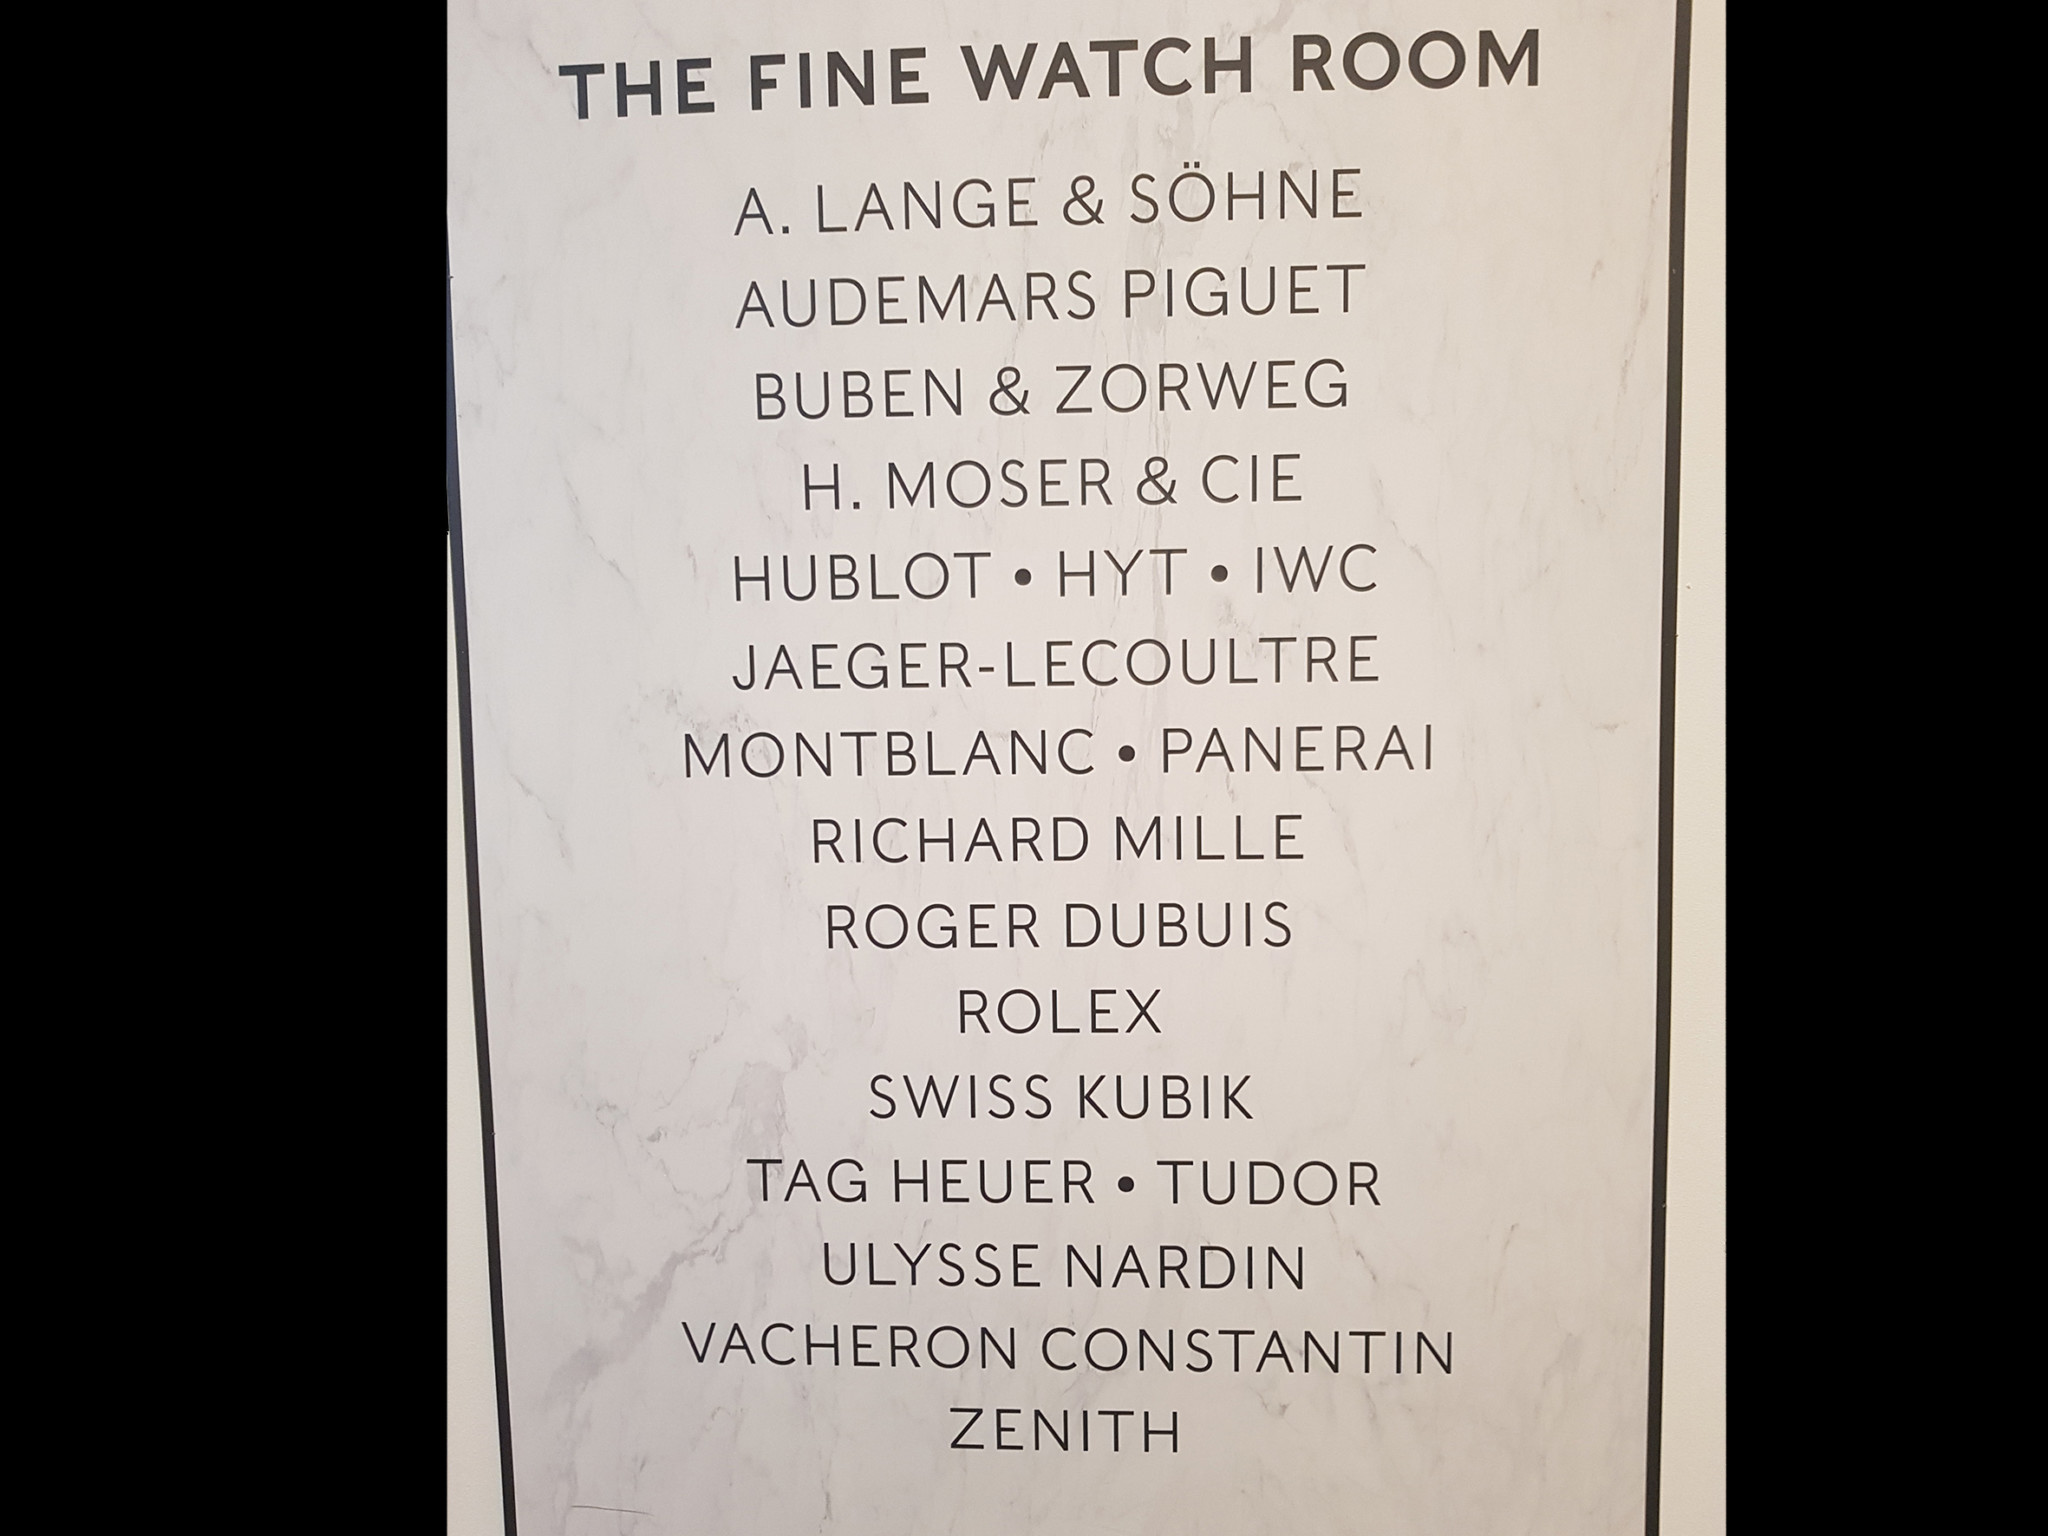 The Harrods Fine Watch Room is currently undergoing major refurbishment work, with hoardings displaying a list of watch brands.